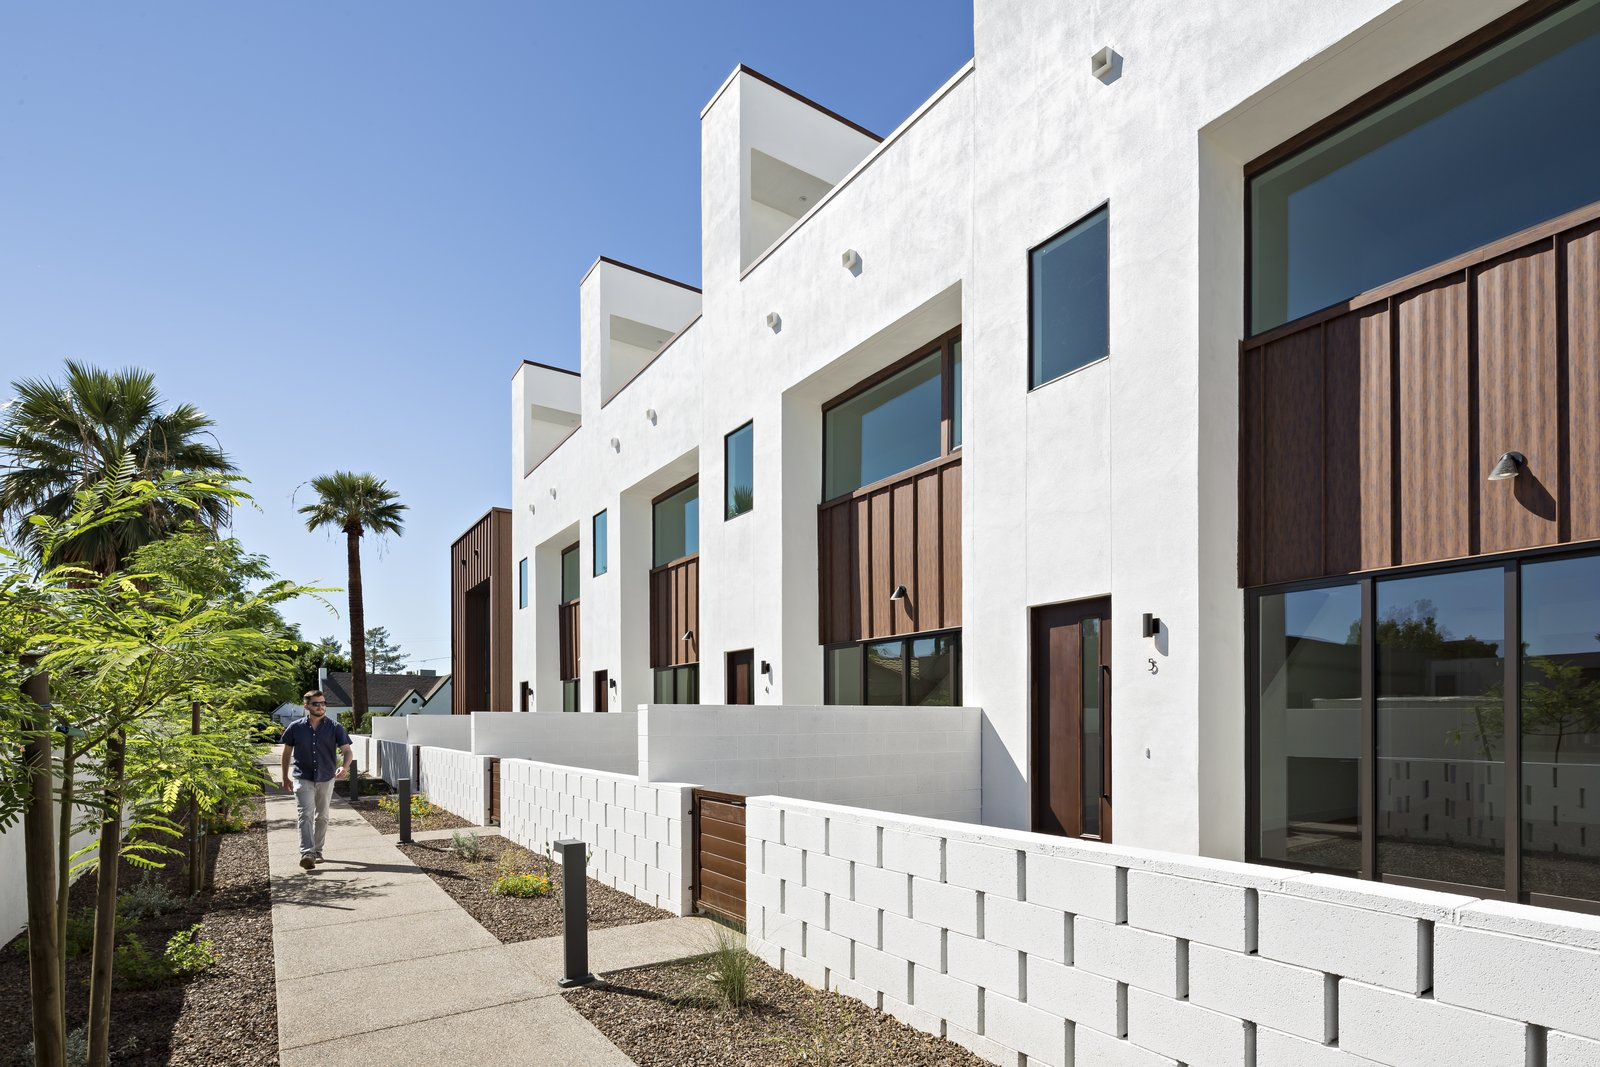 Each unit in this development is accessed by a pedestrian walkway through a private courtyard. The low, spaced concrete block wall provides a social component to the development Tagged: Outdoor, Front Yard, Trees, Desert, Shrubs, Flowers, Hardscapes, Horizontal Fences, Wall, Concrete Patio, Porch, Deck, and Decomposed Granite Patio, Porch, Deck.  Uptown Row by The Ranch Mine